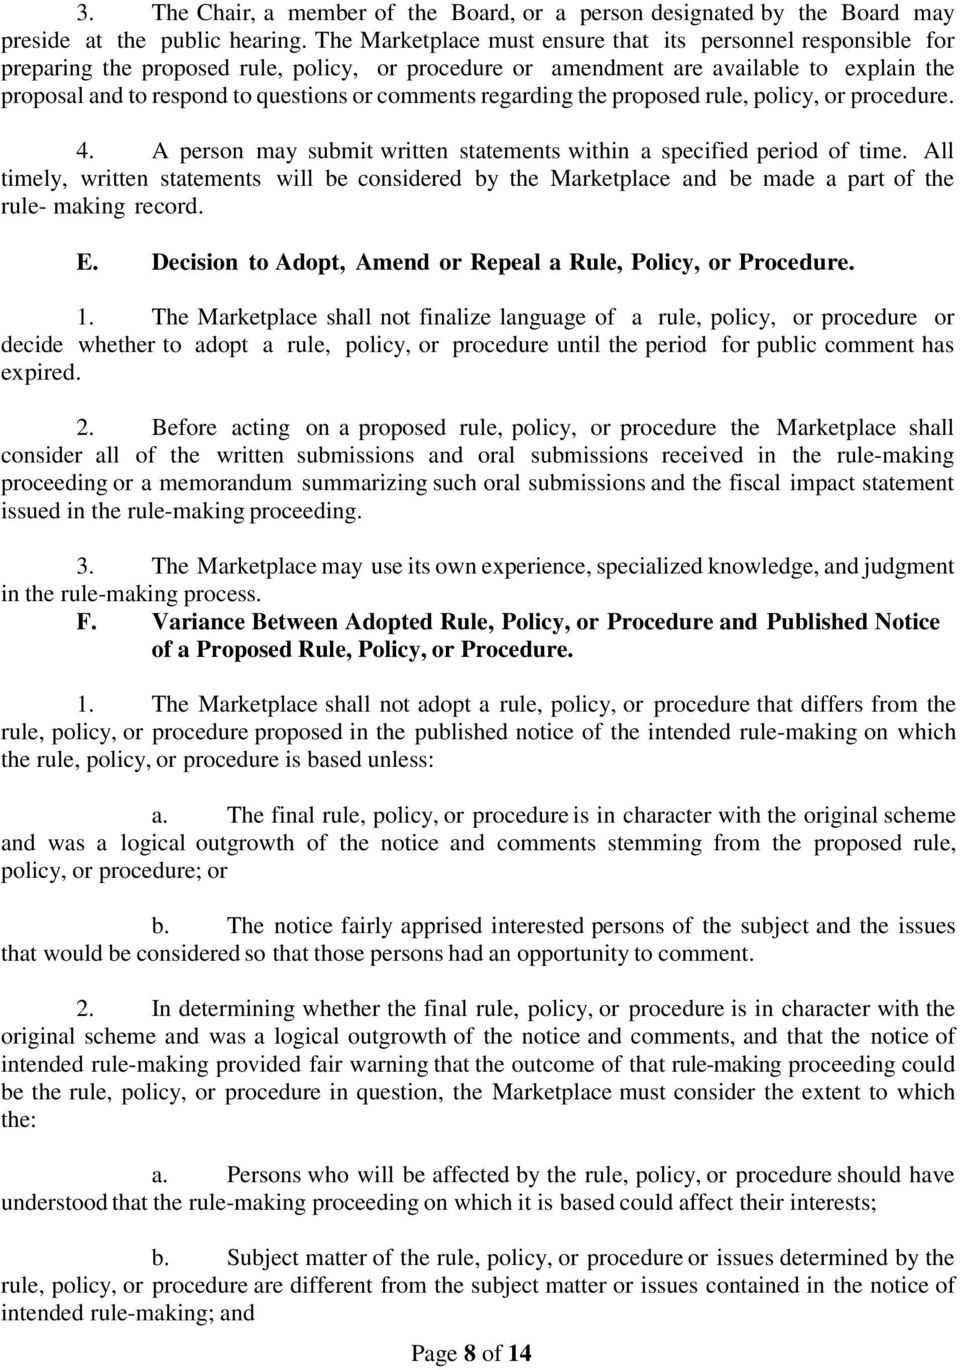 comments regarding the proposed rule, policy, or procedure. 4. A person may submit written statements within a specified period of time.